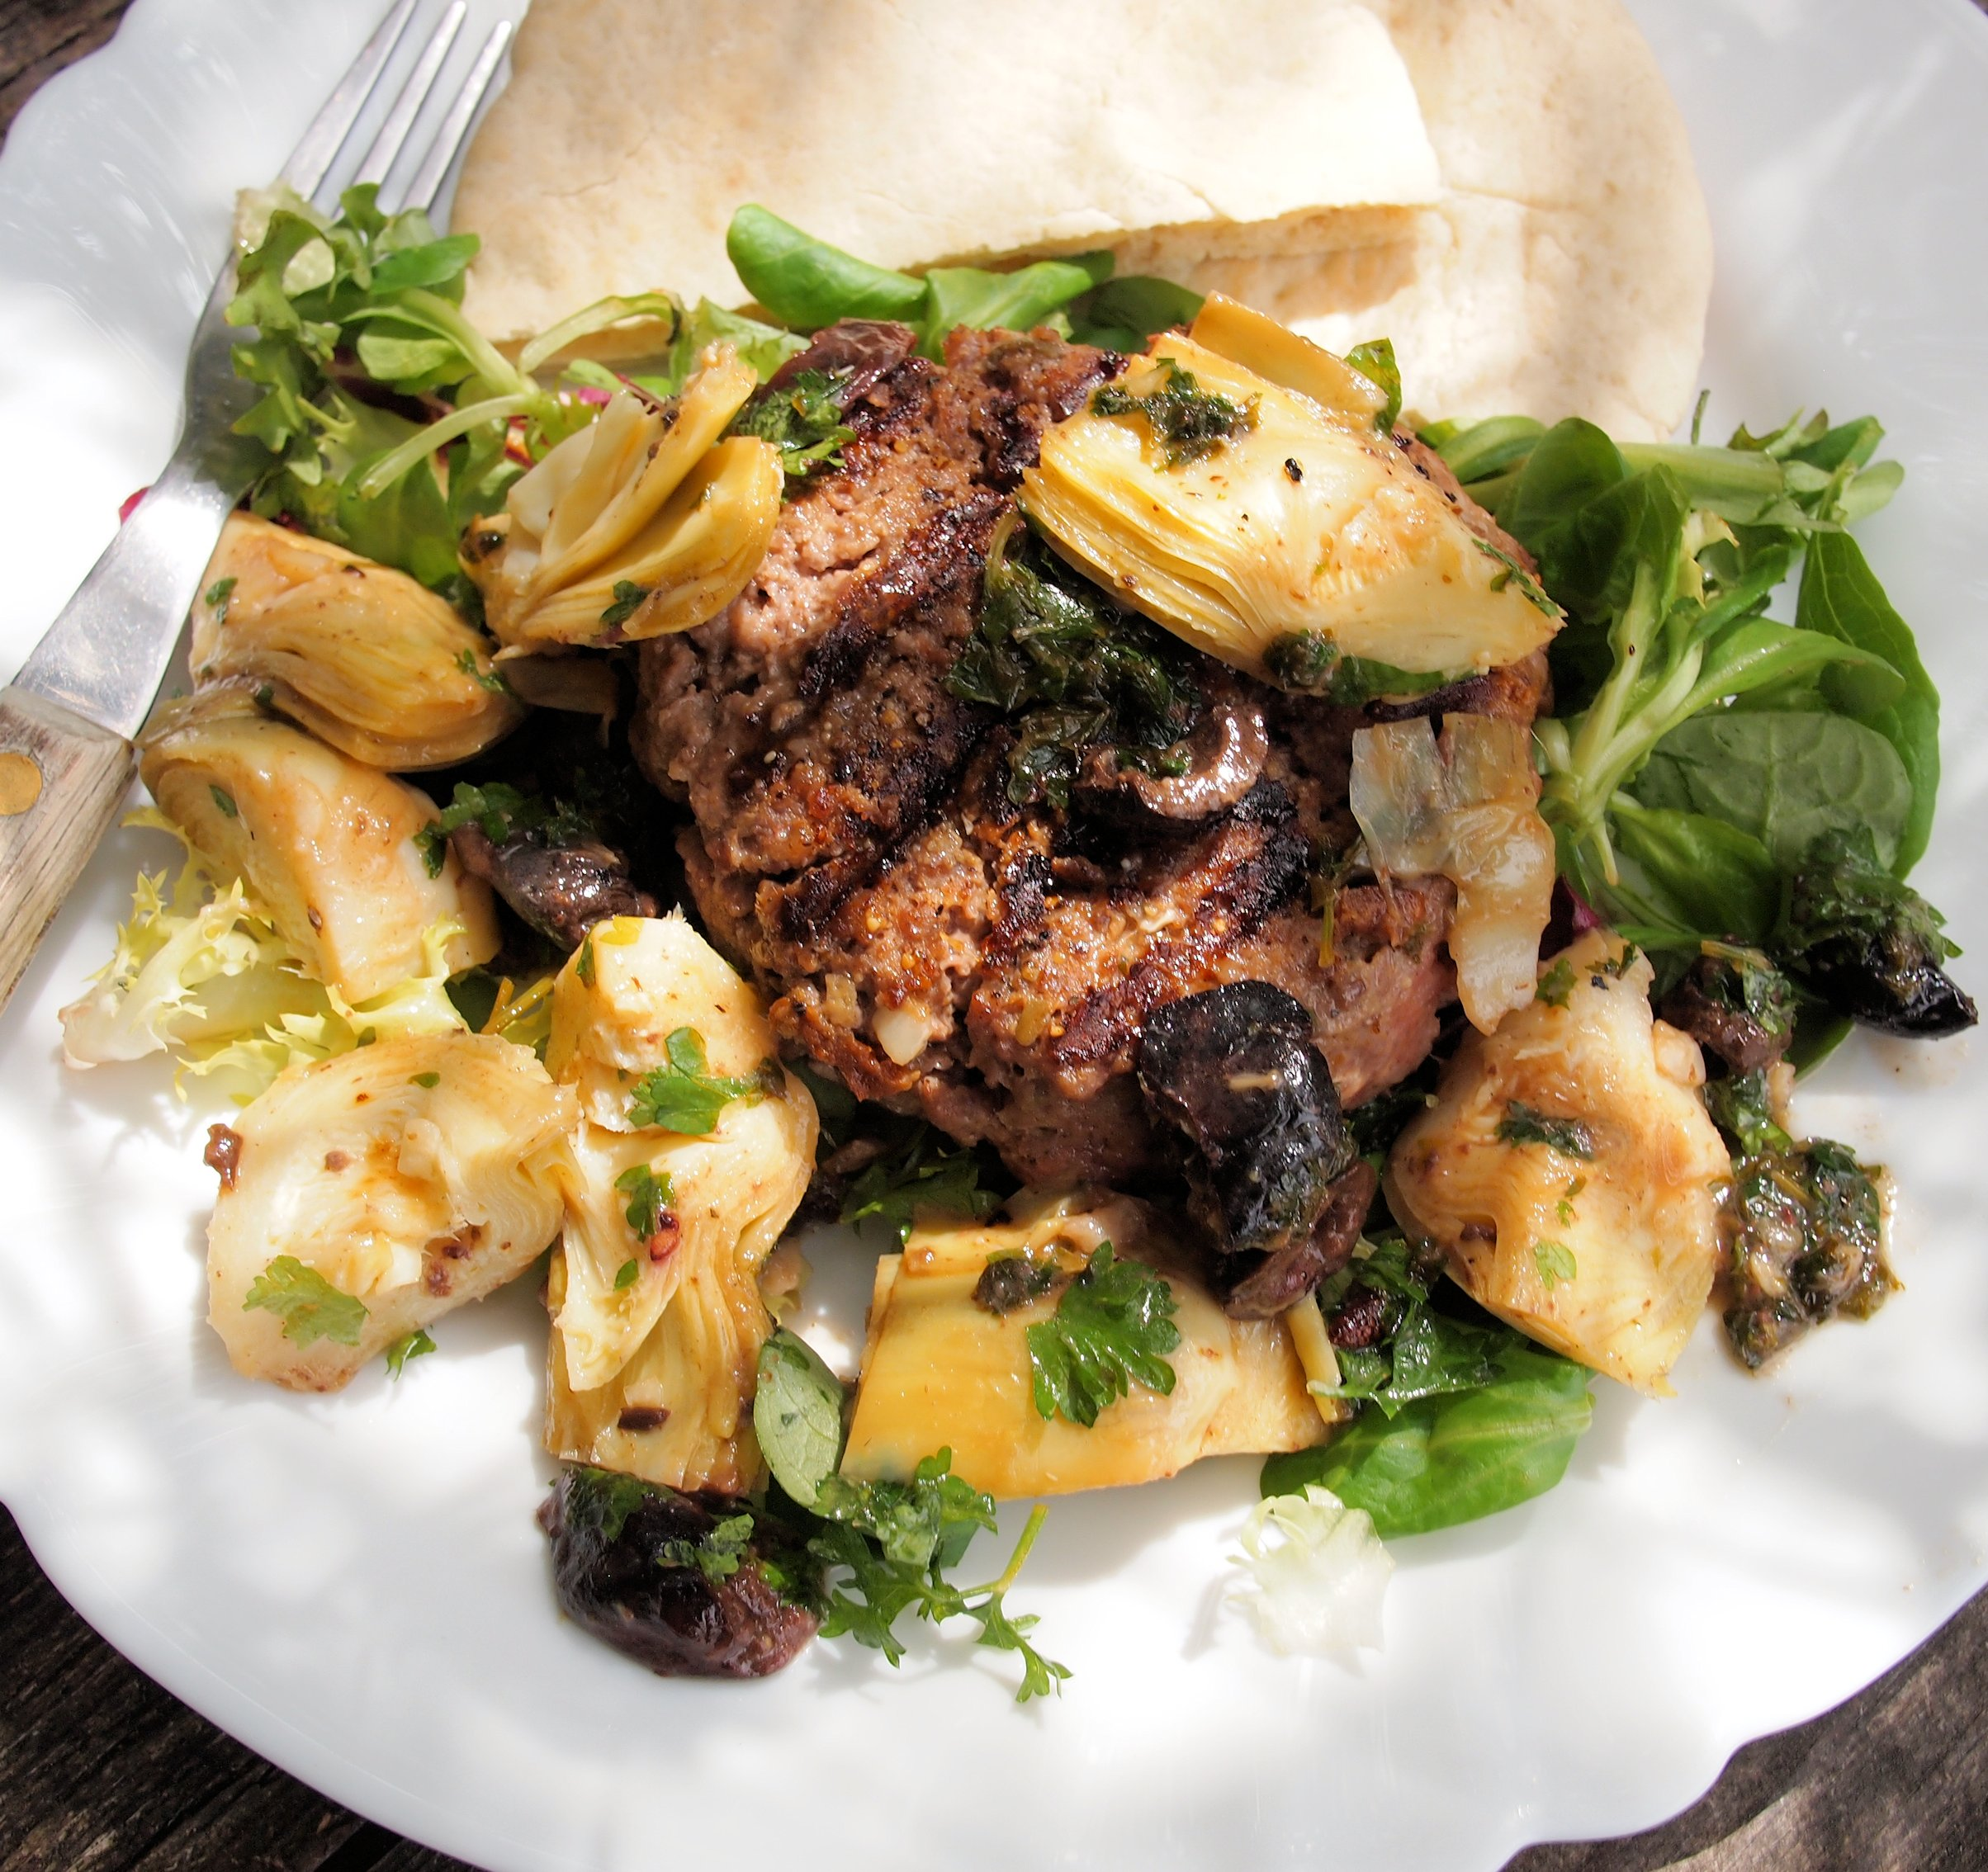 A Special 5 2 Diet Recipe For Fast Days Luxury Steak Burger With Artichokes And Olives